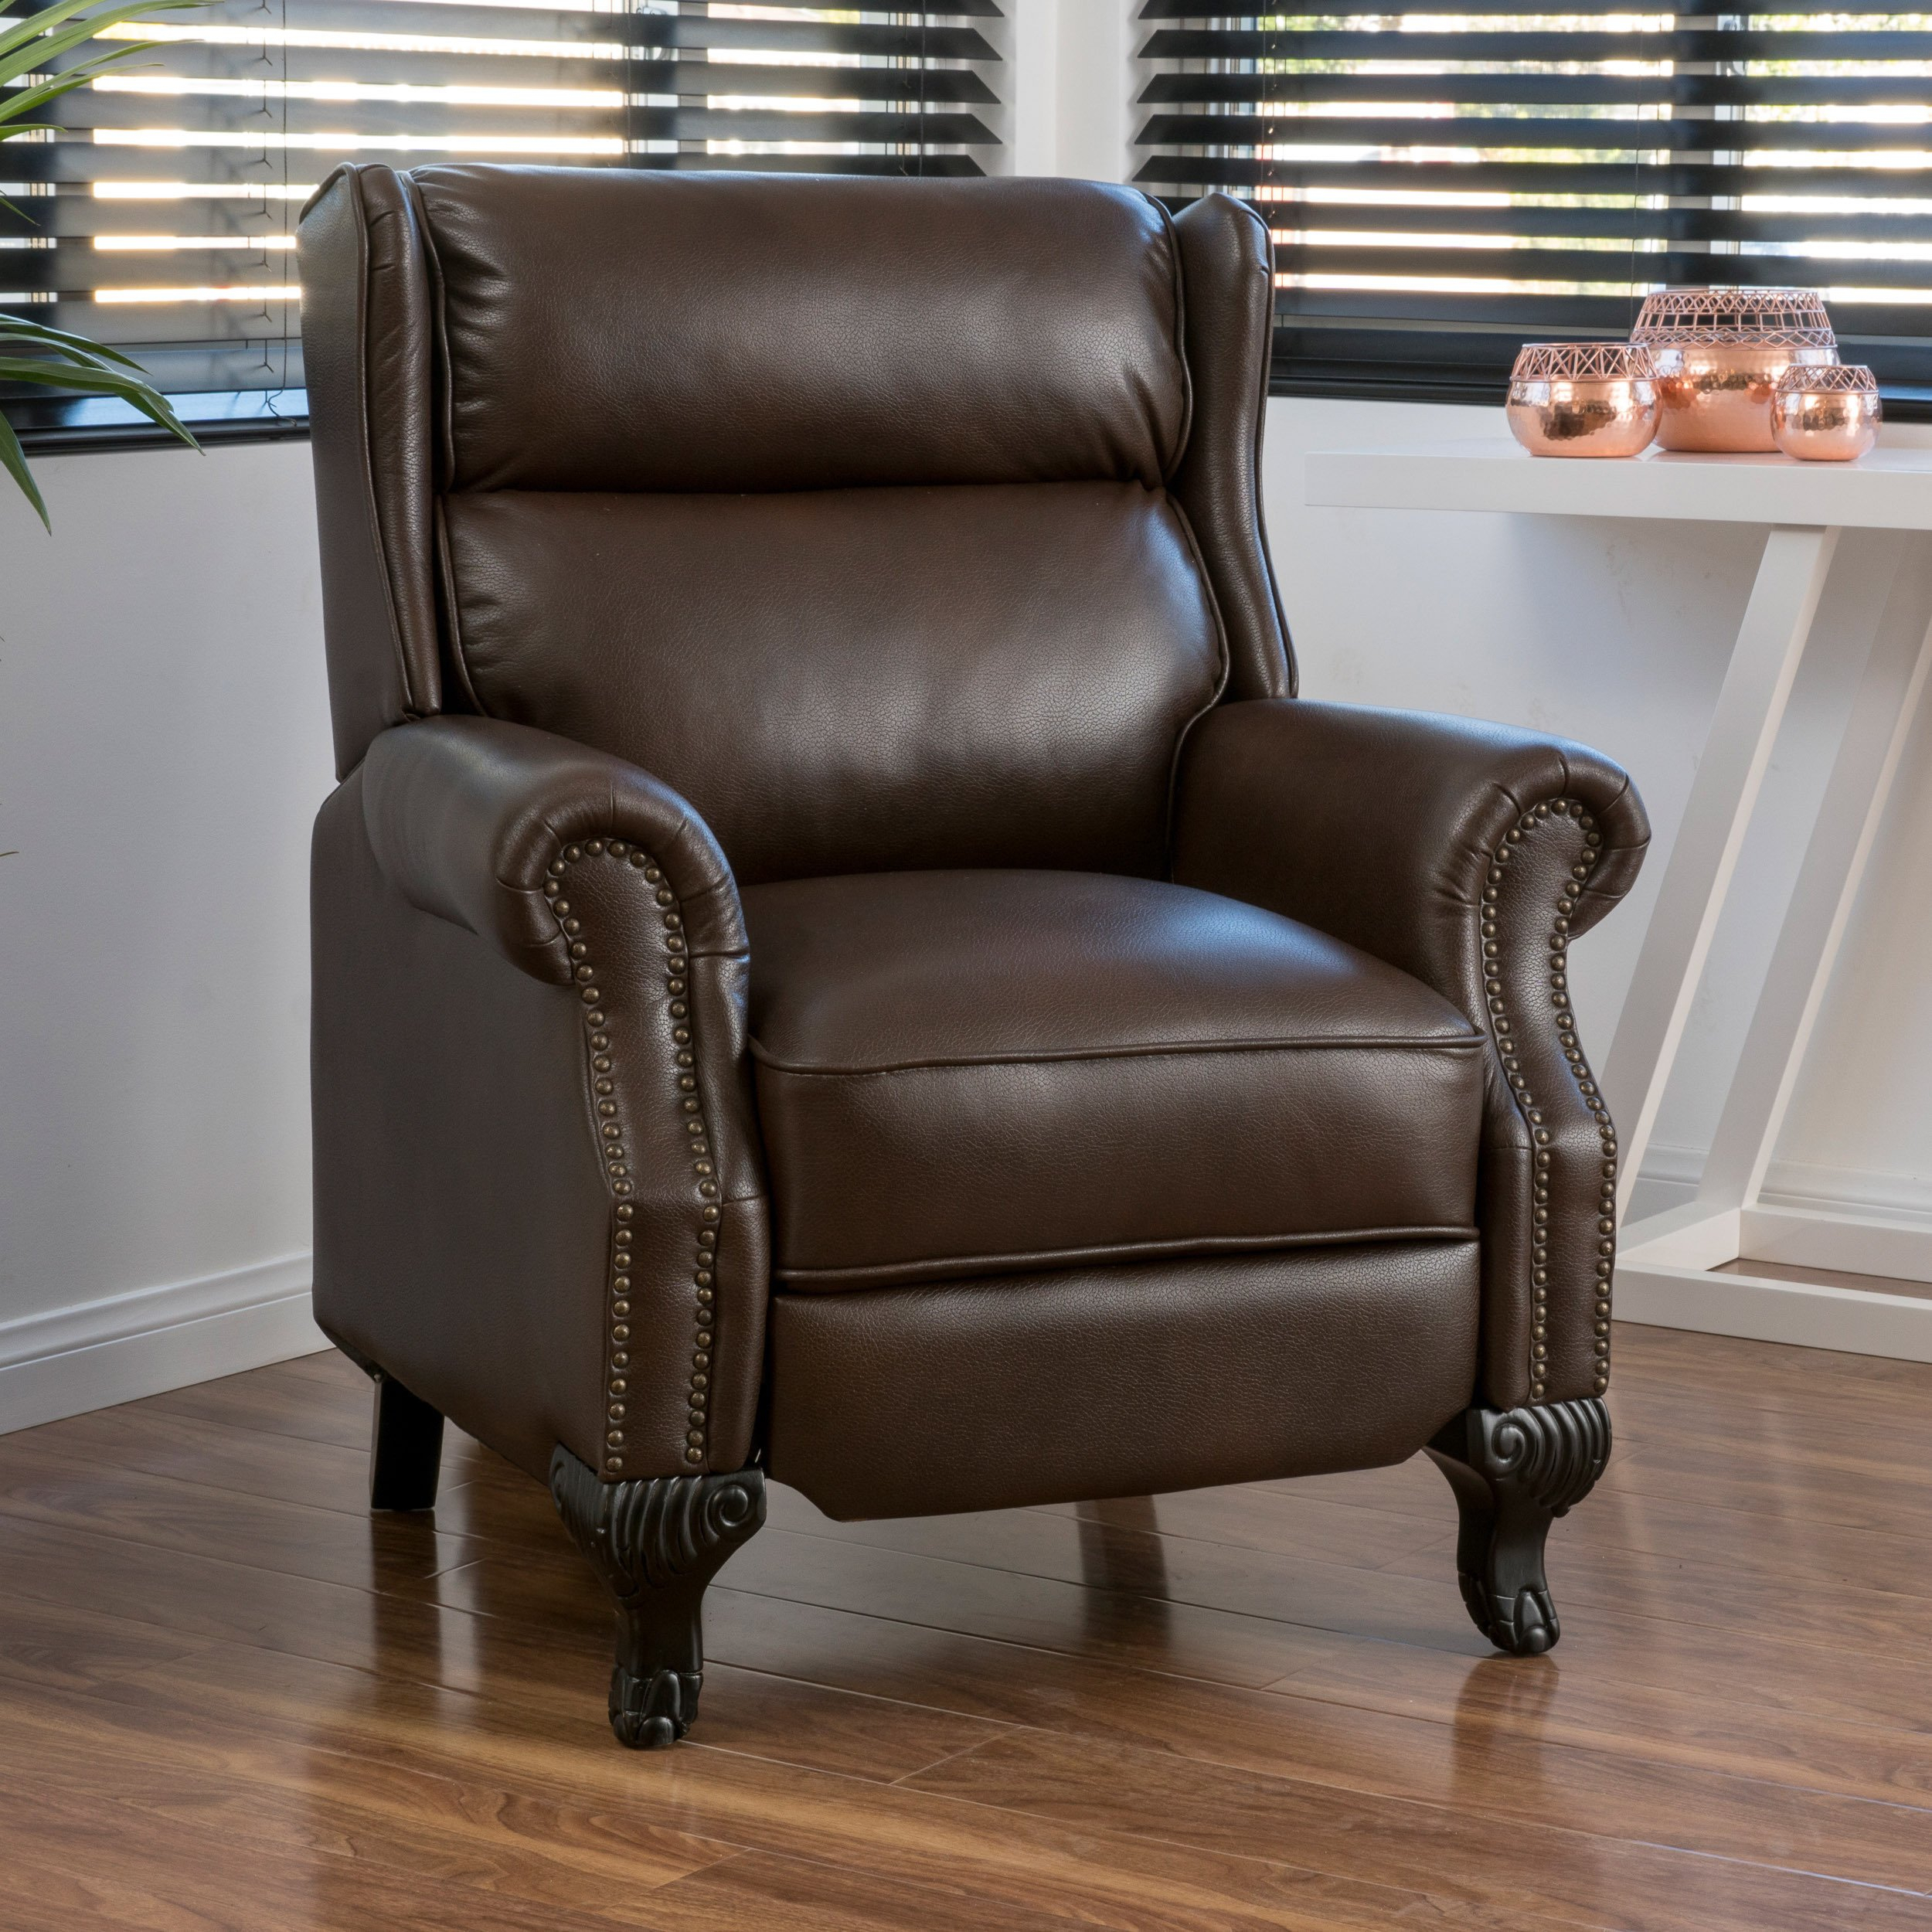 Buy Brown Christopher Knight Home Living Room Chairs Online At Intended For Dale Iii Polyurethane Swivel Glider Recliners (View 21 of 25)